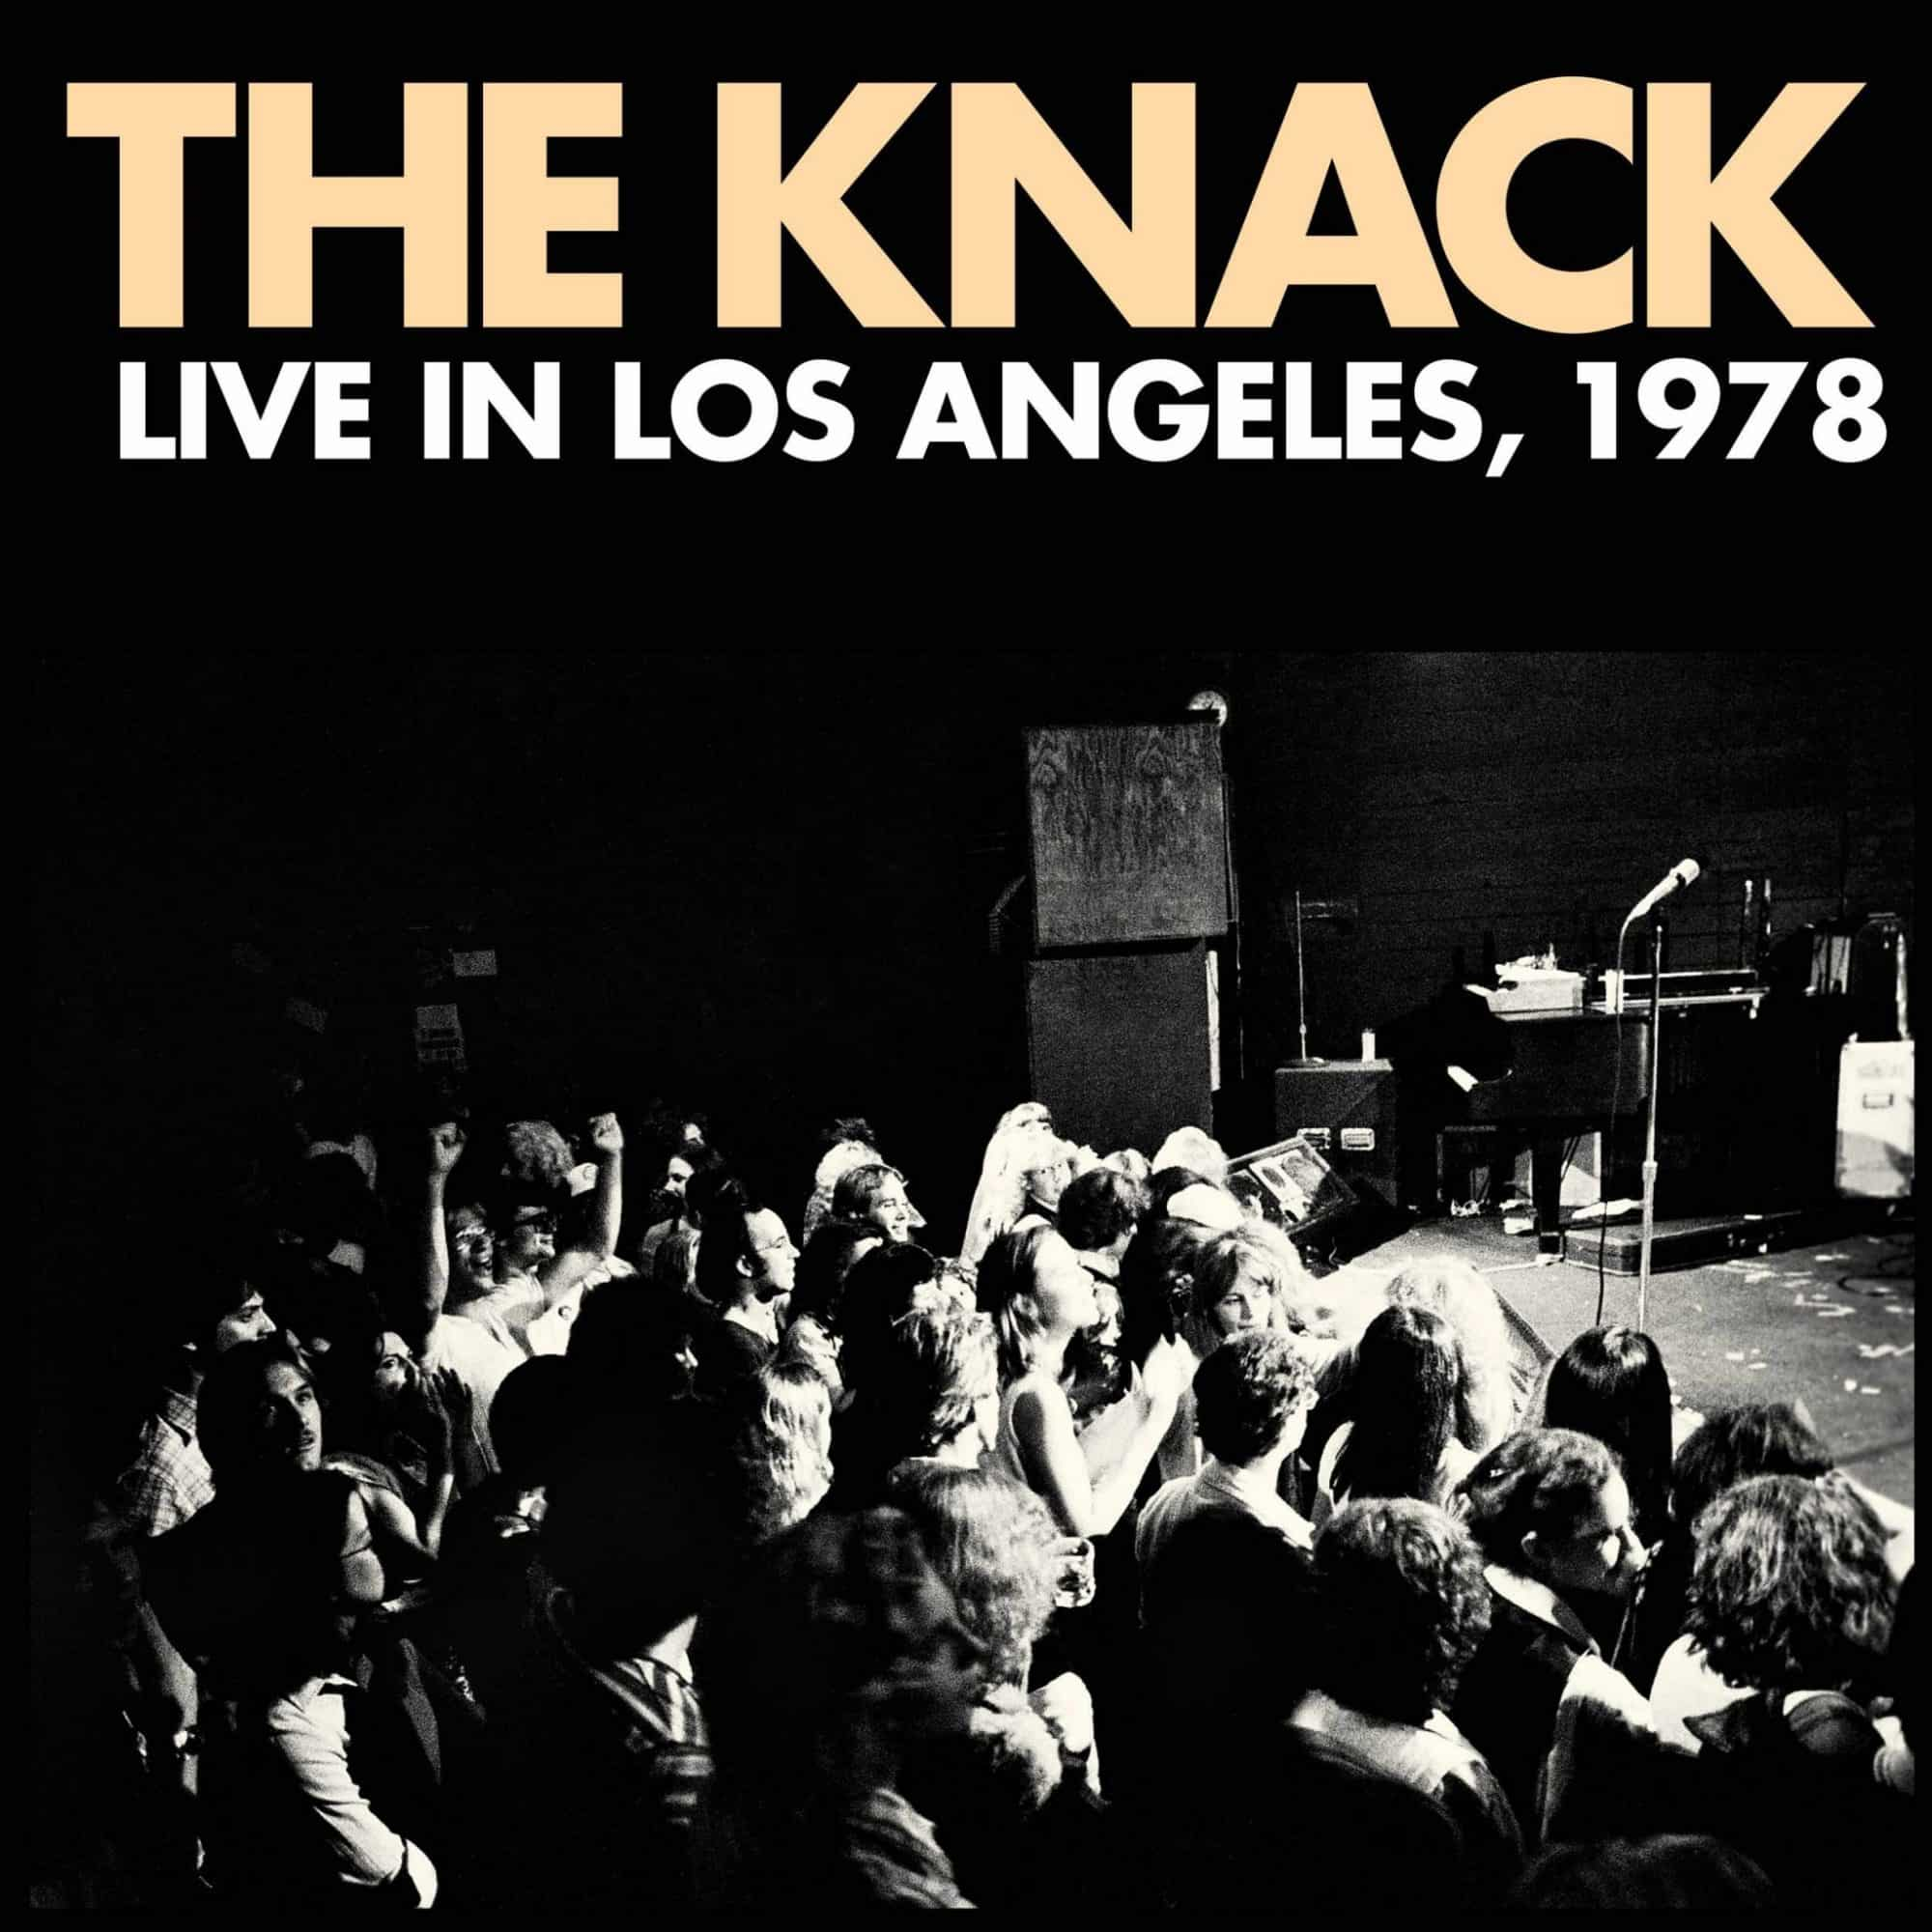 The coloring book ep - The Knack And How To Get It Omnivore Offers Knack Ep Rare Buck Owens Coloring Book For Record Store Day